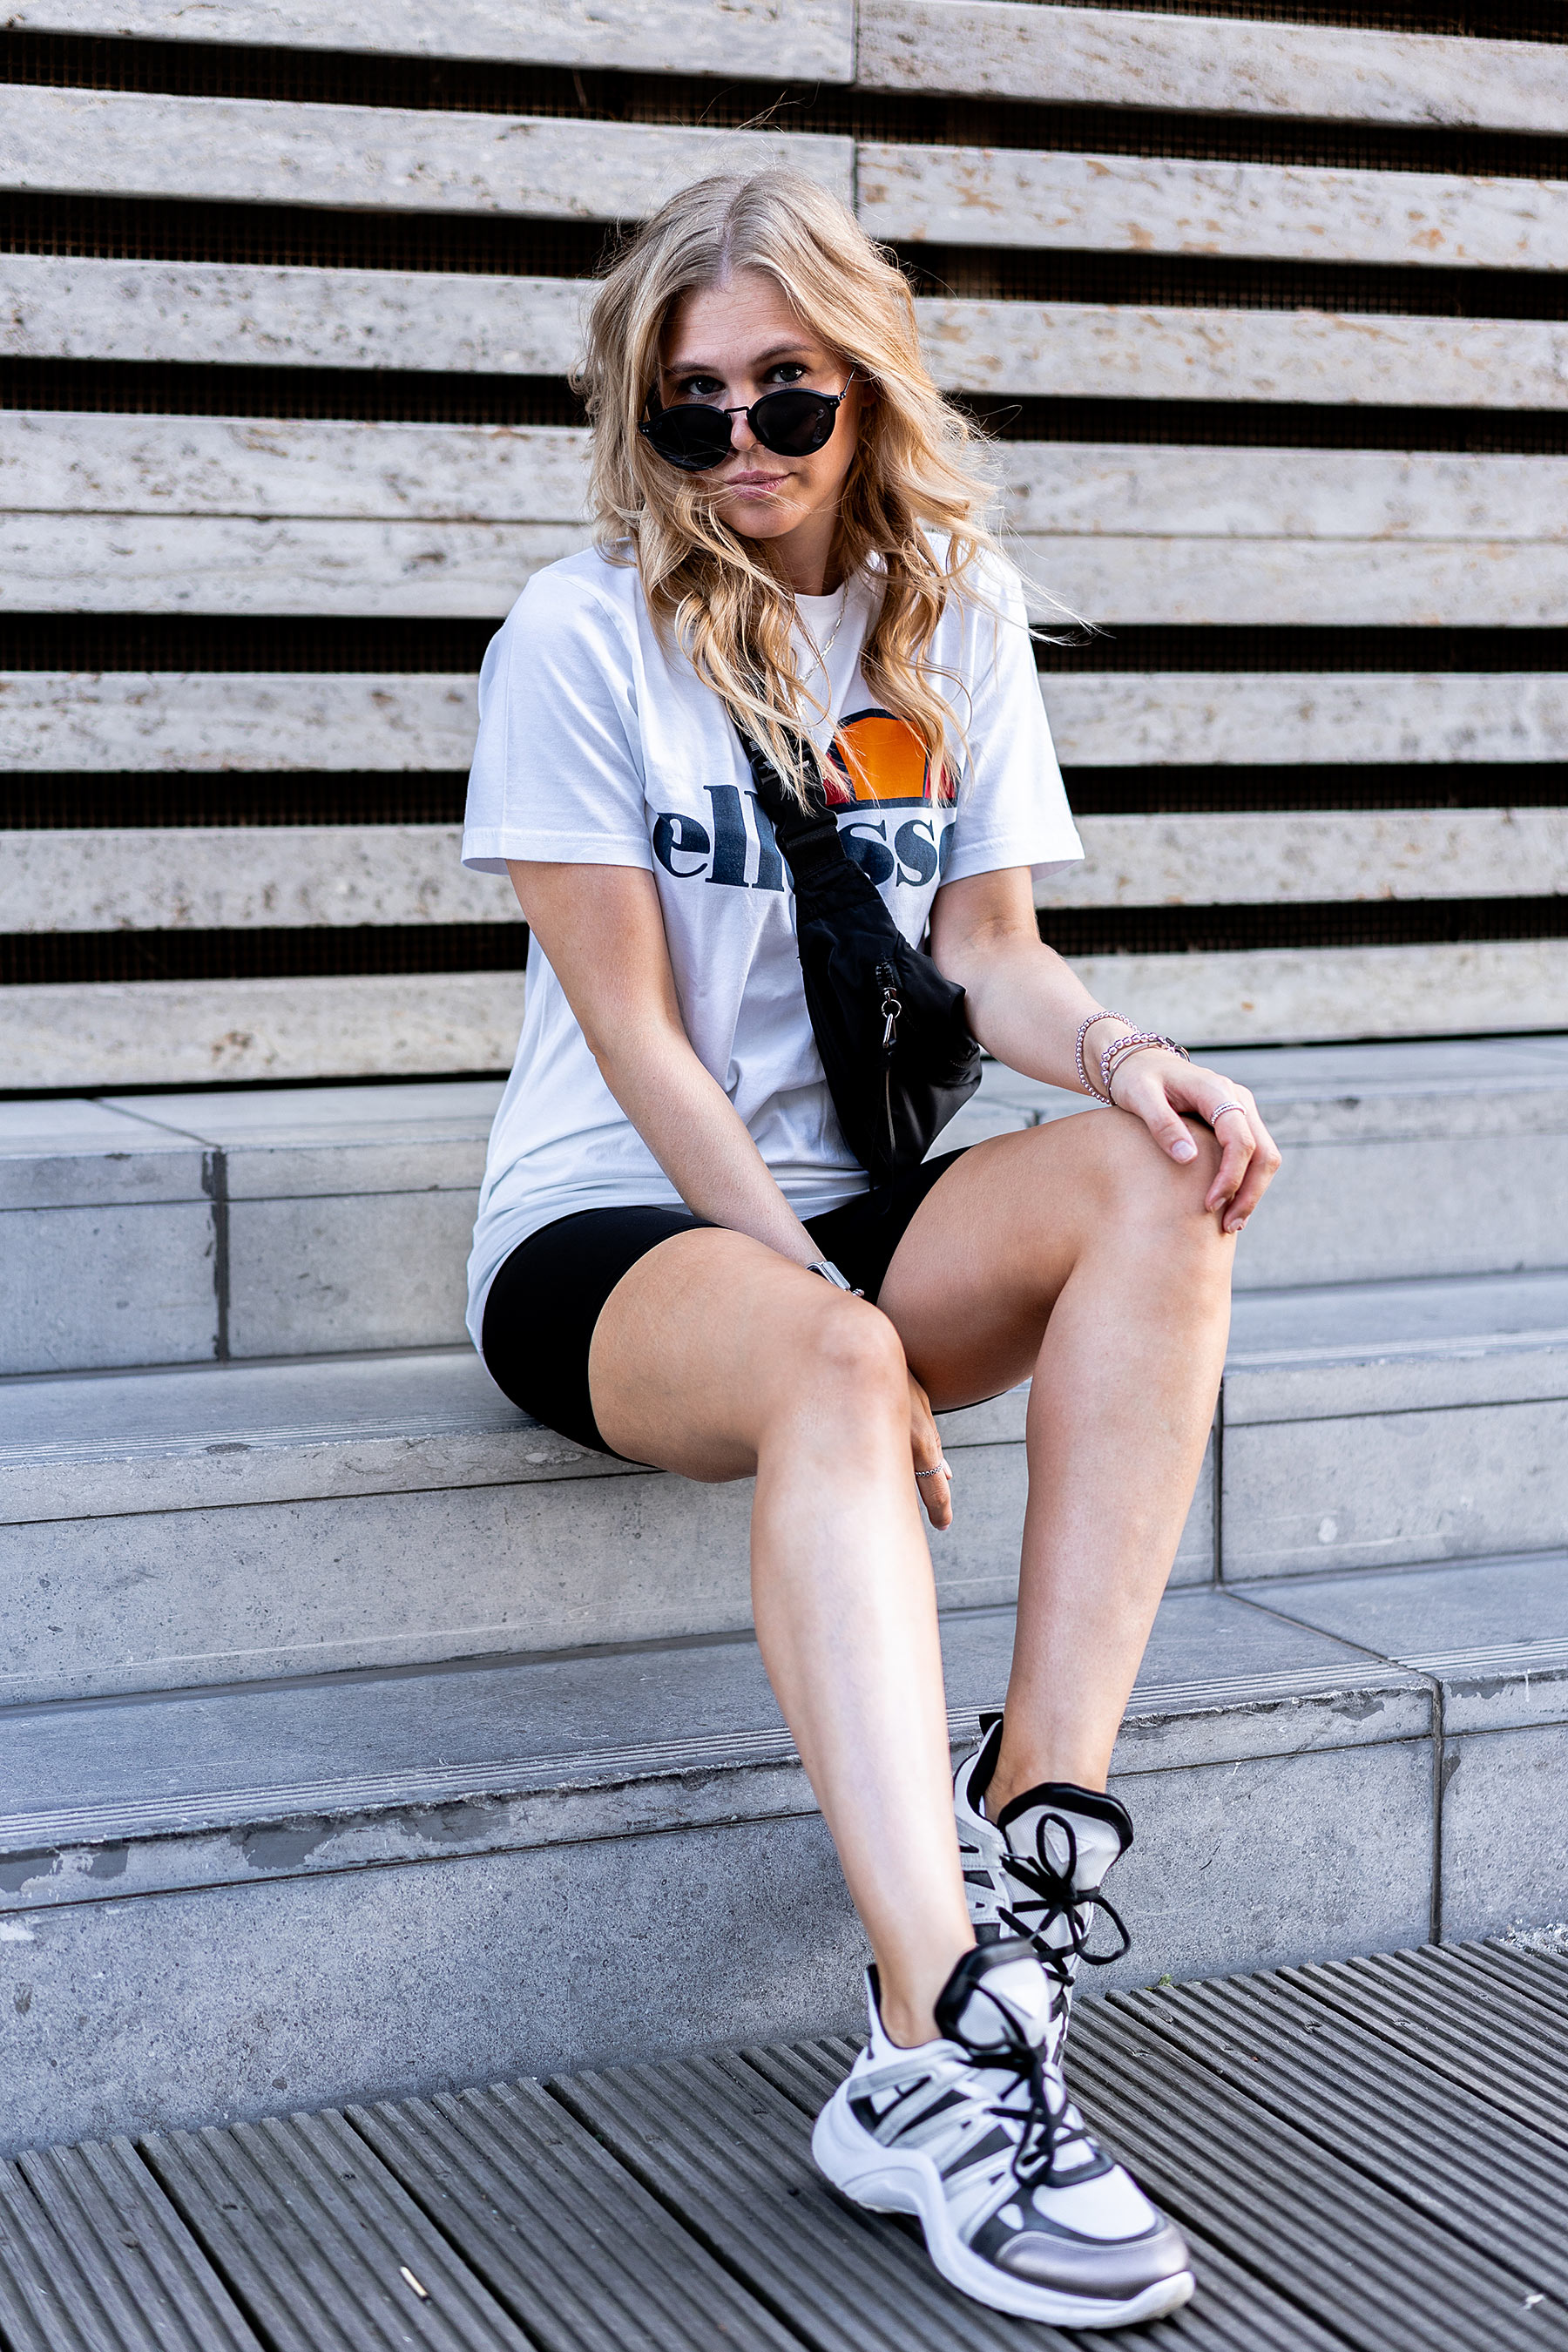 louis vuitton sneaker archlight lookalike fashion blogger sunnyinga